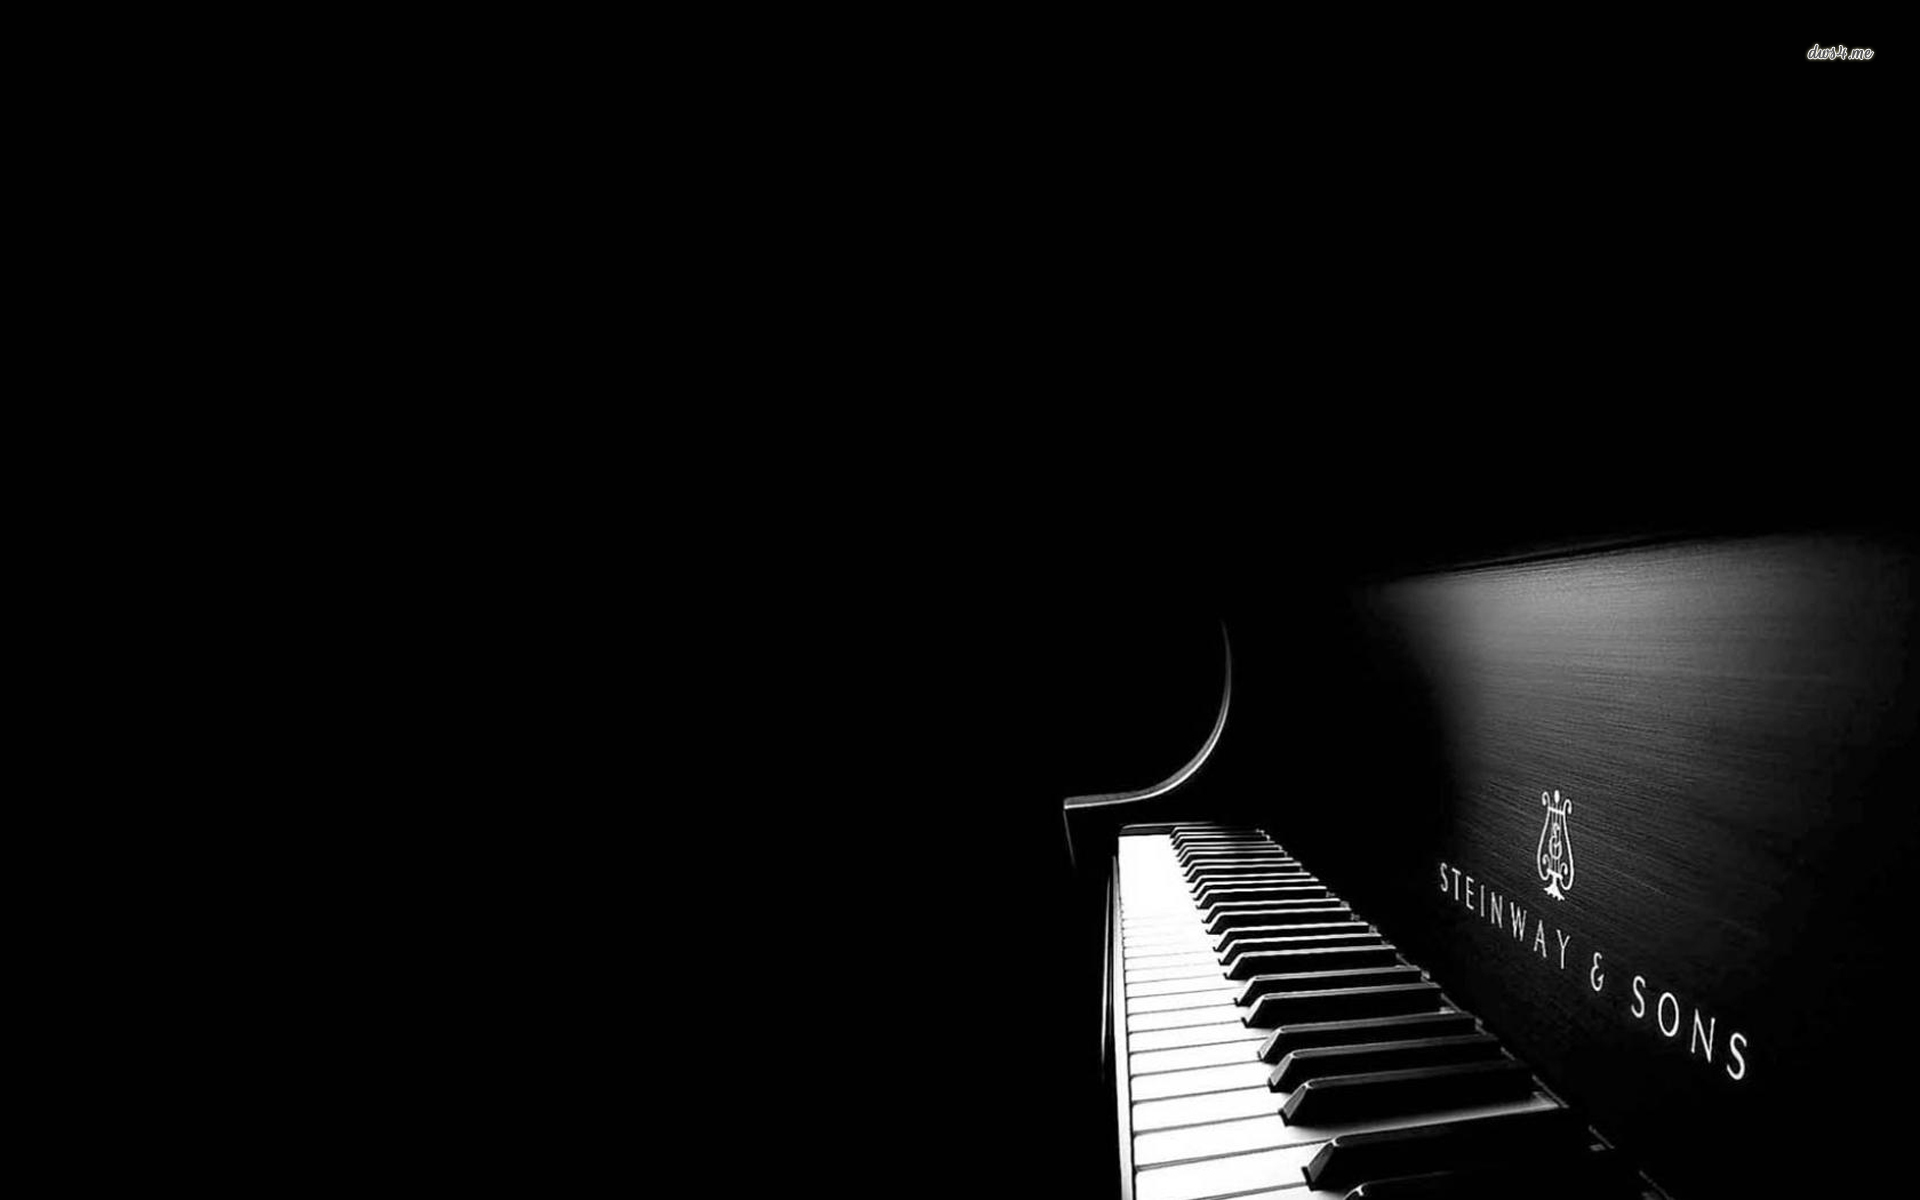 Steinway Sons piano wallpaper   Music wallpapers   19708 1920x1200